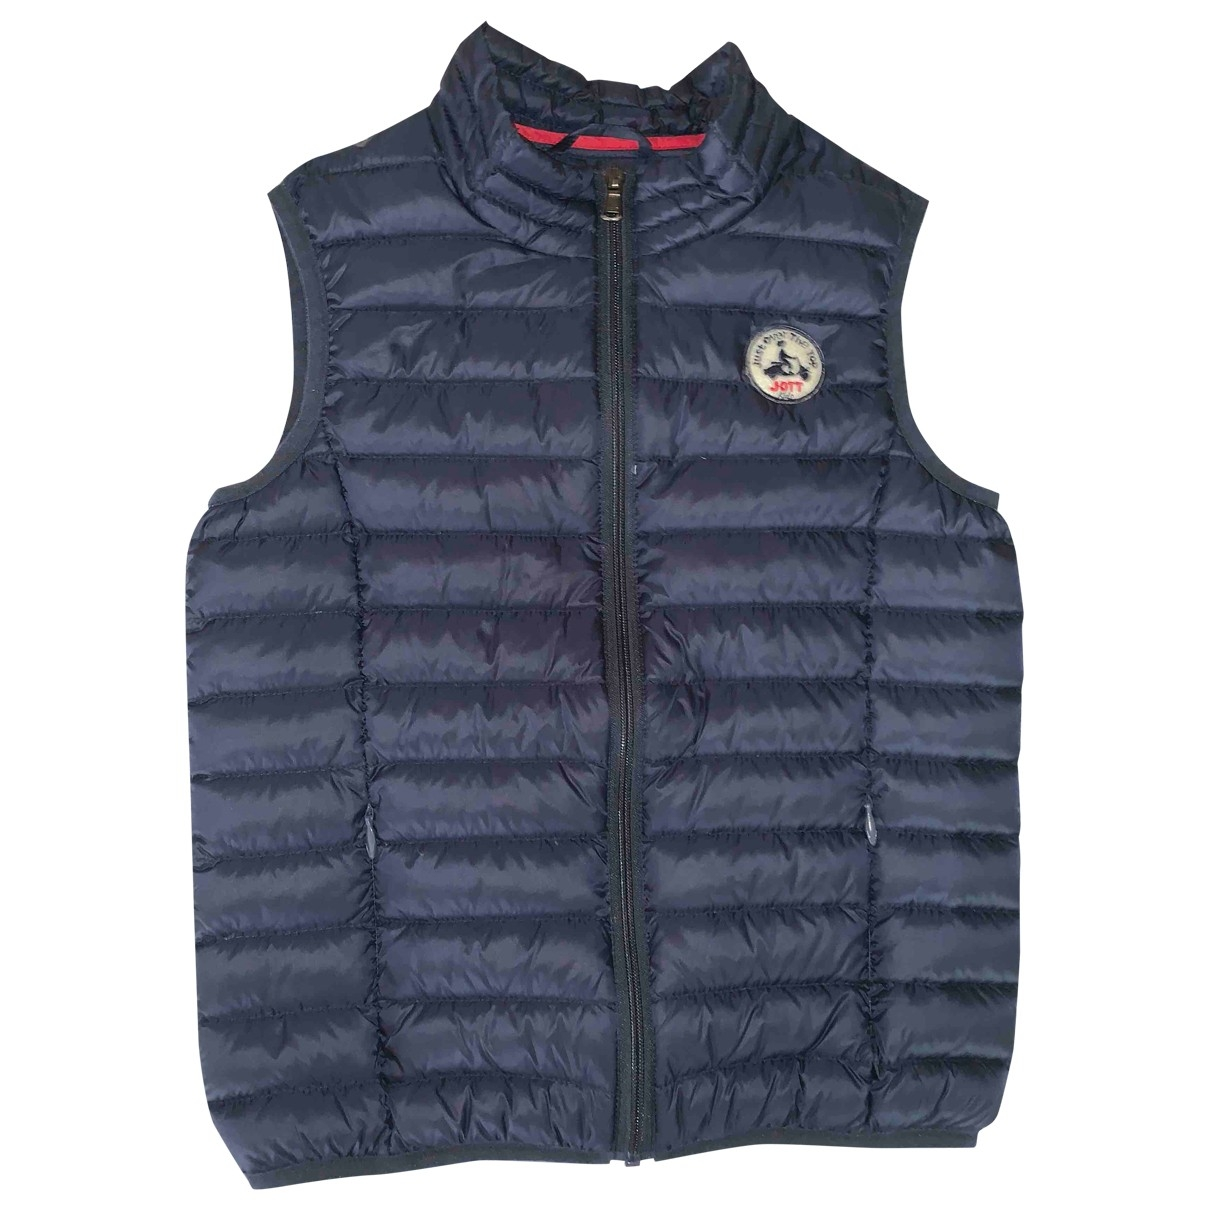 Jott \N Navy jacket & coat for Kids 10 years - up to 142cm FR